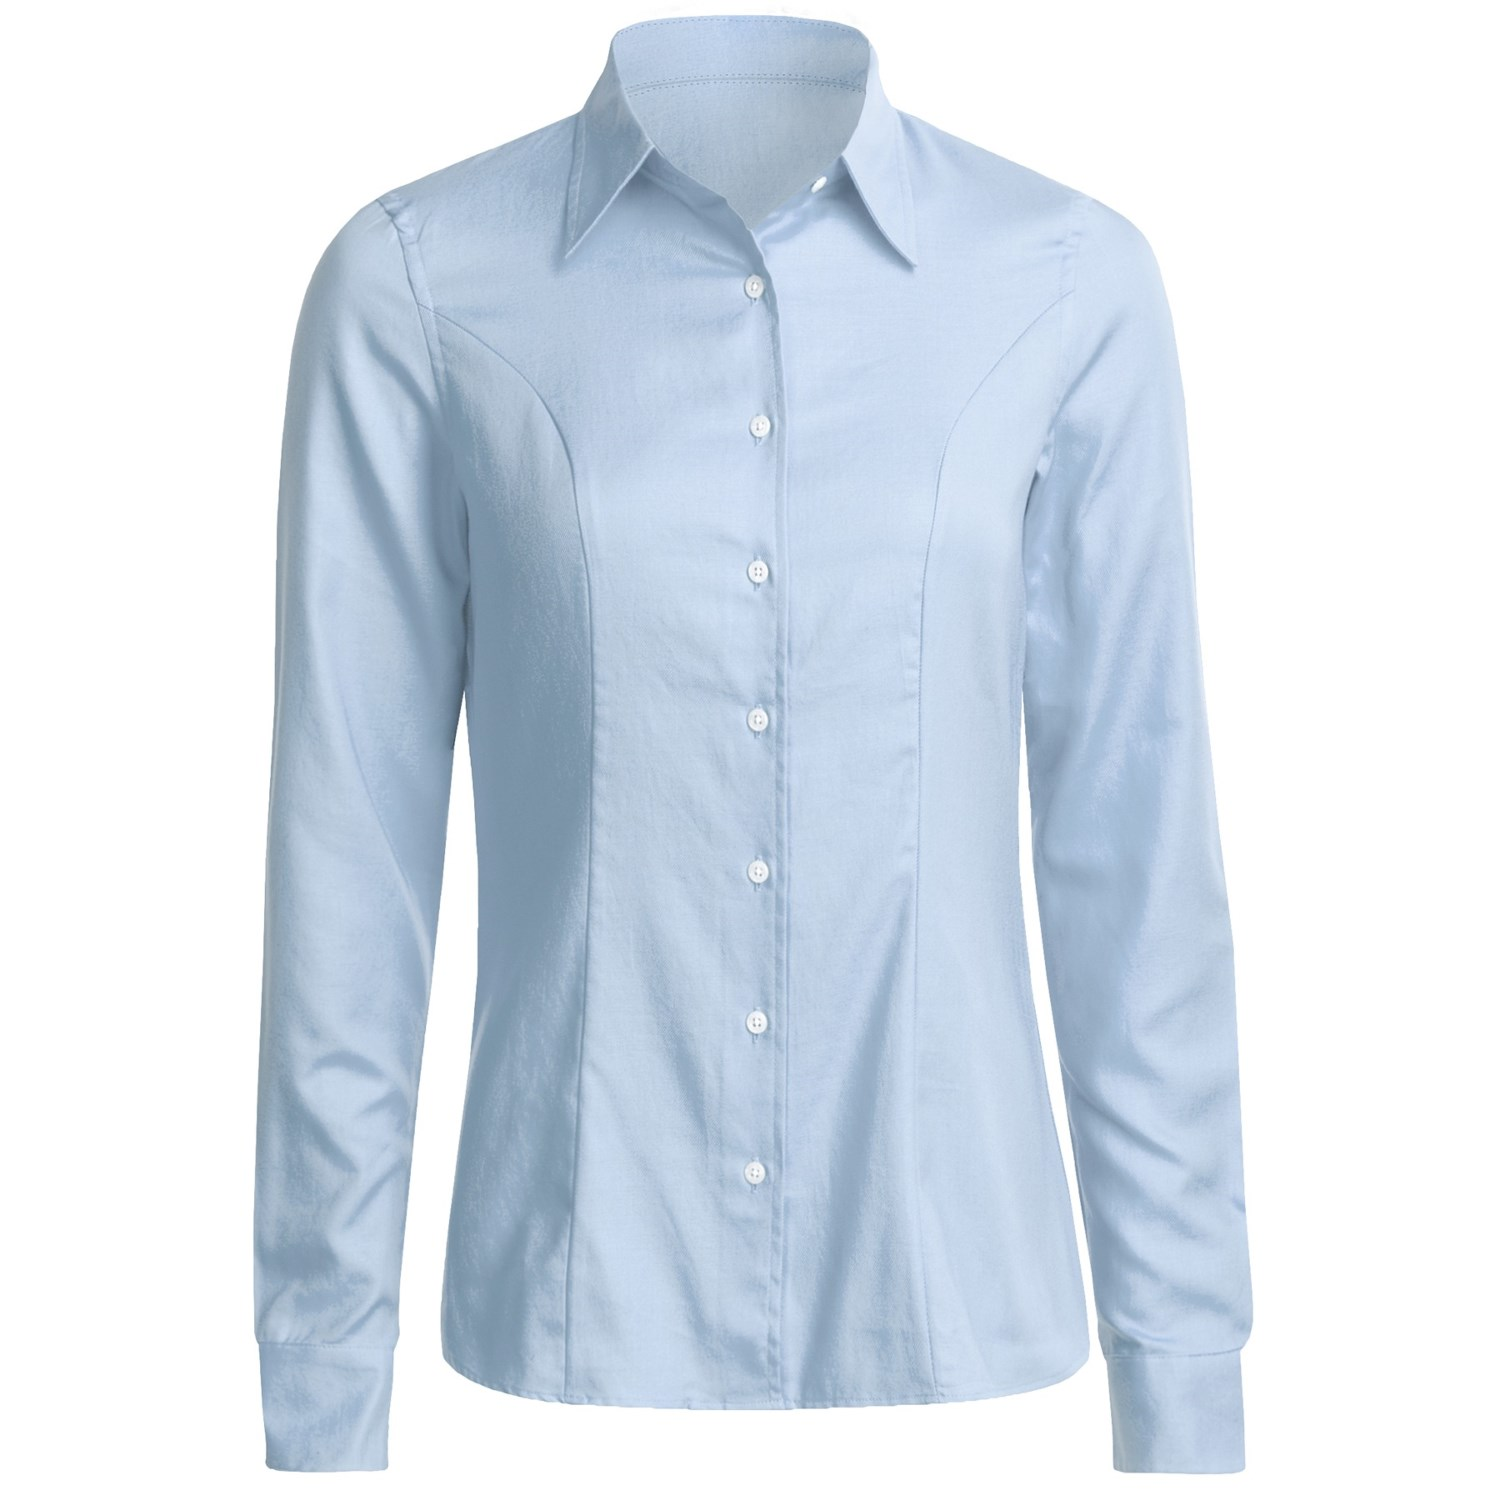 Creative  Short Sleeve Women39s Light Blue Oxford Executive ButtonDown Shirt